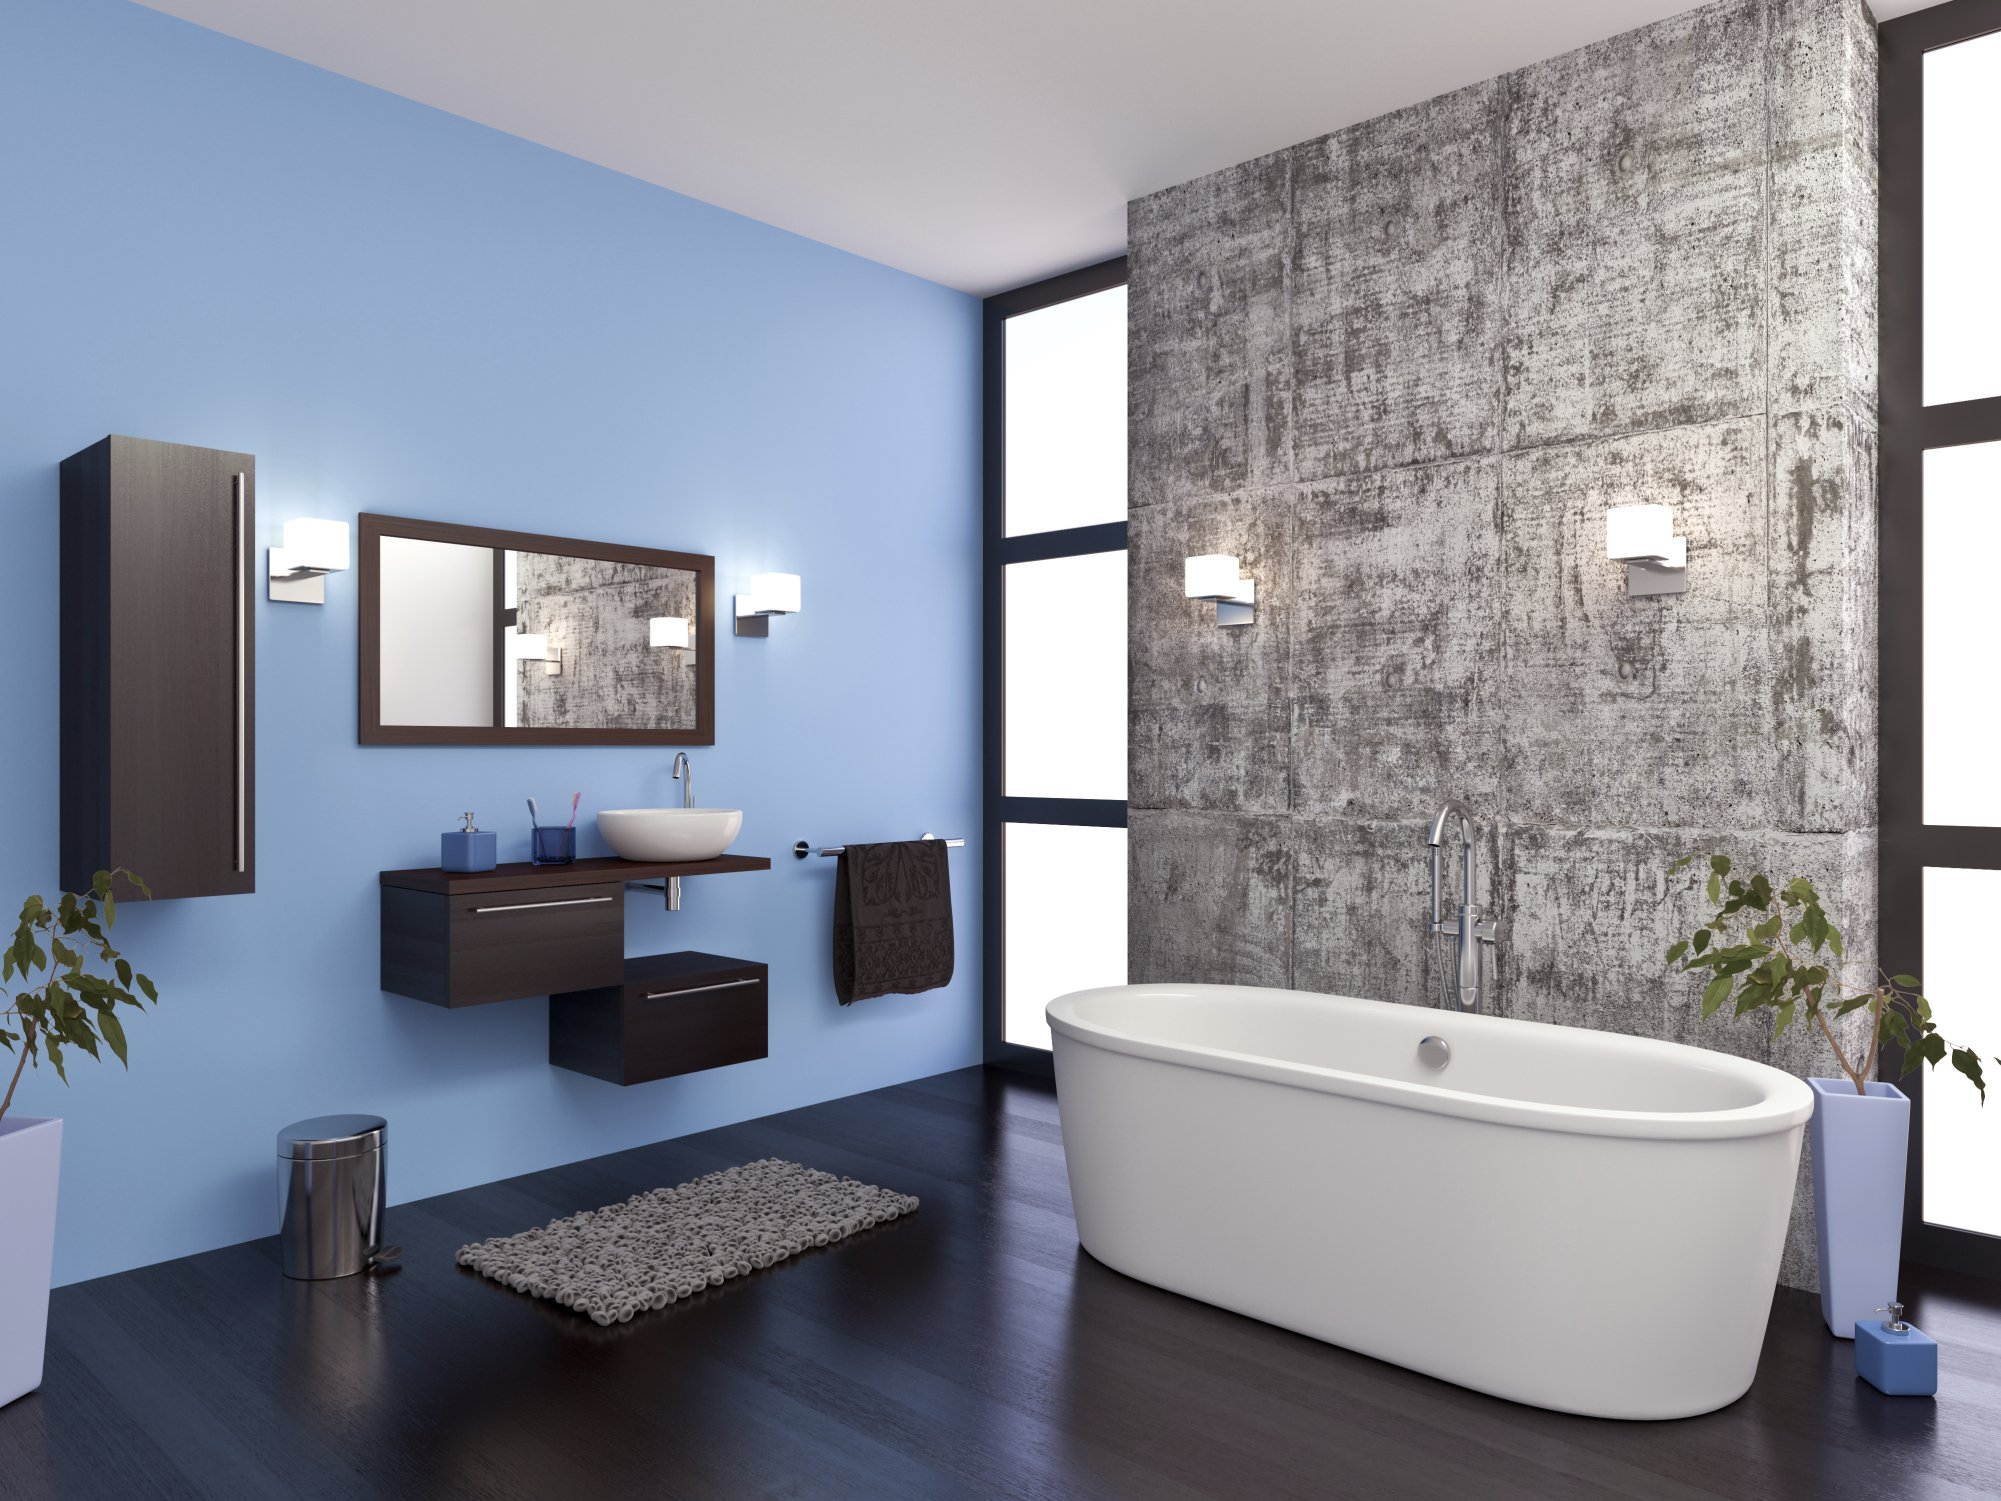 embark services design plan remodeling project interior tn of residential home chattanooga bathroom beautiful remodel